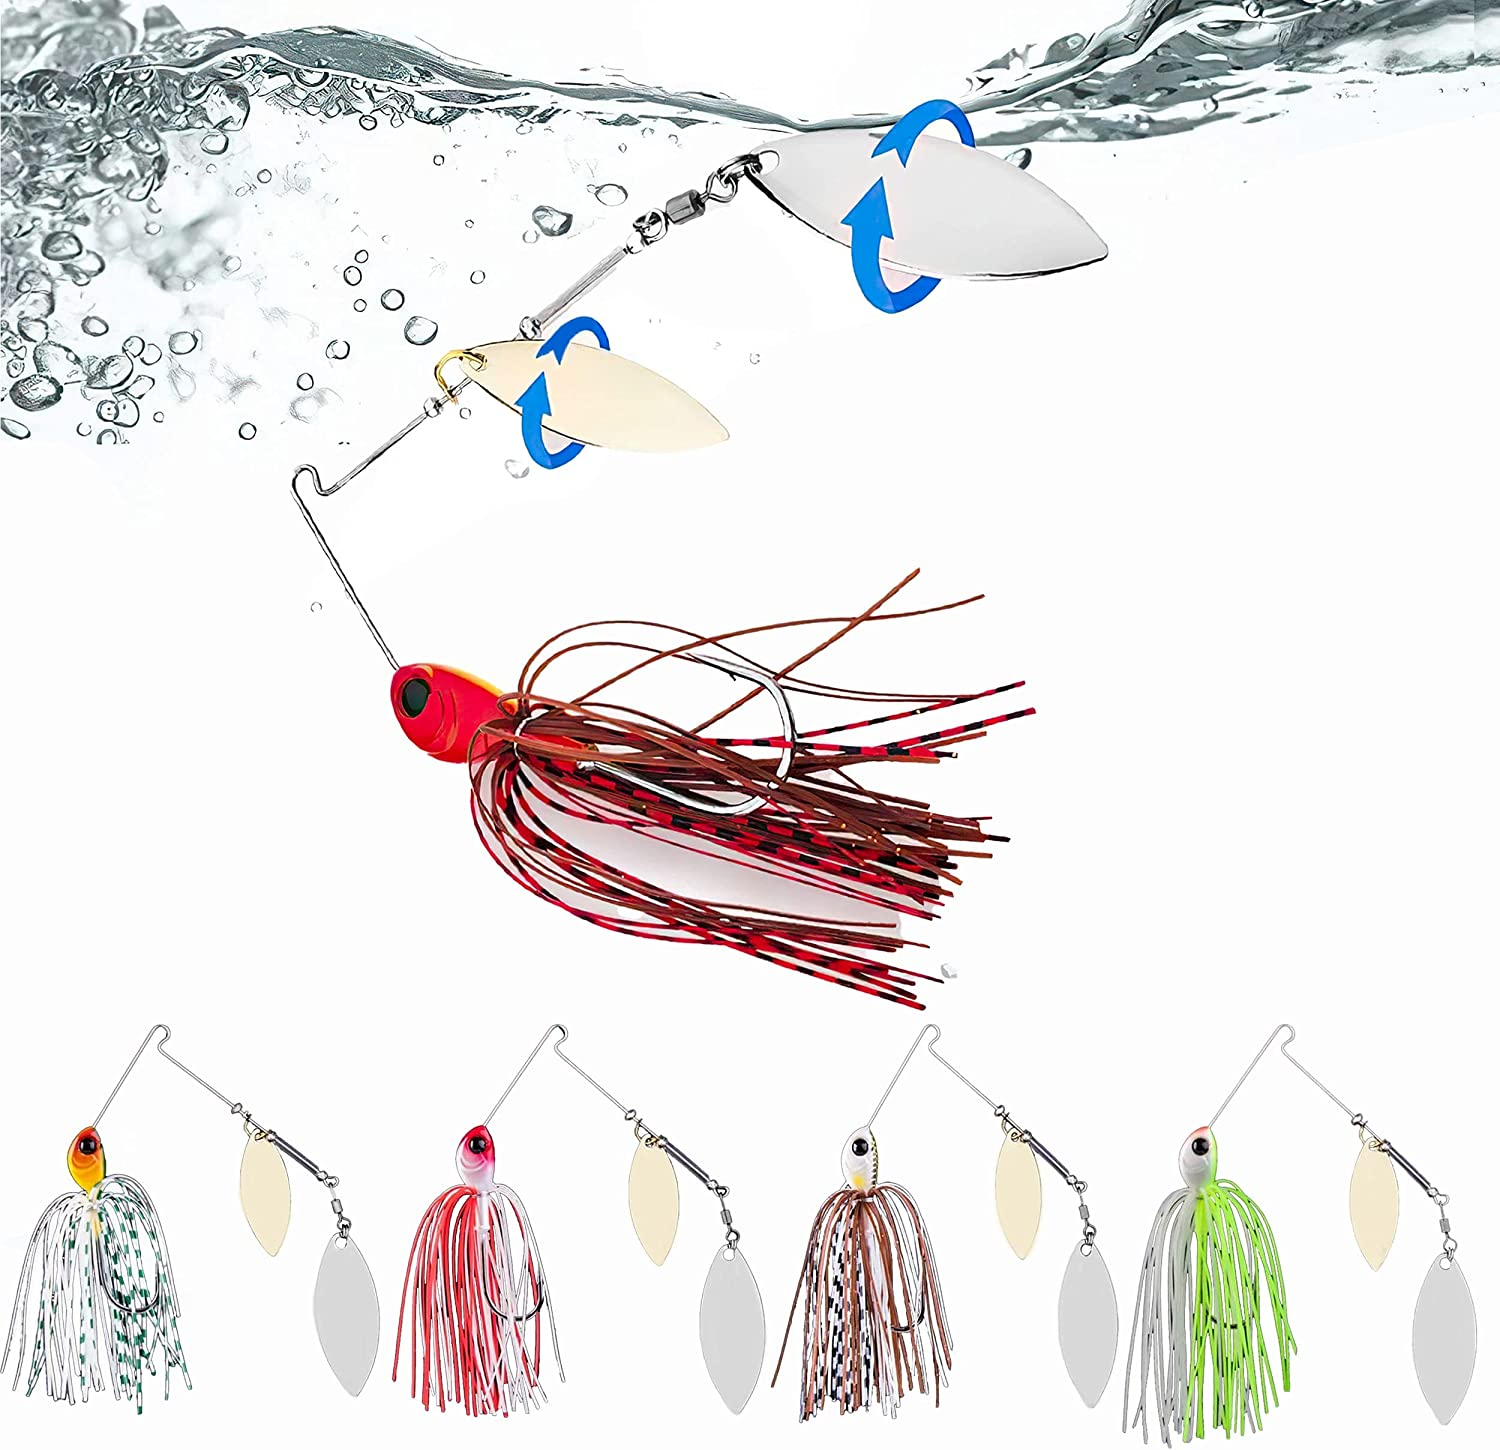 Ali York Fishing Lures for Bass, 5 Pcs Spinner Baits for Bass Fishing, Trout Lures Freshwater Kits, Rooster Tail Fishing Lures, Fishing Bait for Freshwater & Saltwater, Bass Lures : Sports & Outdoors